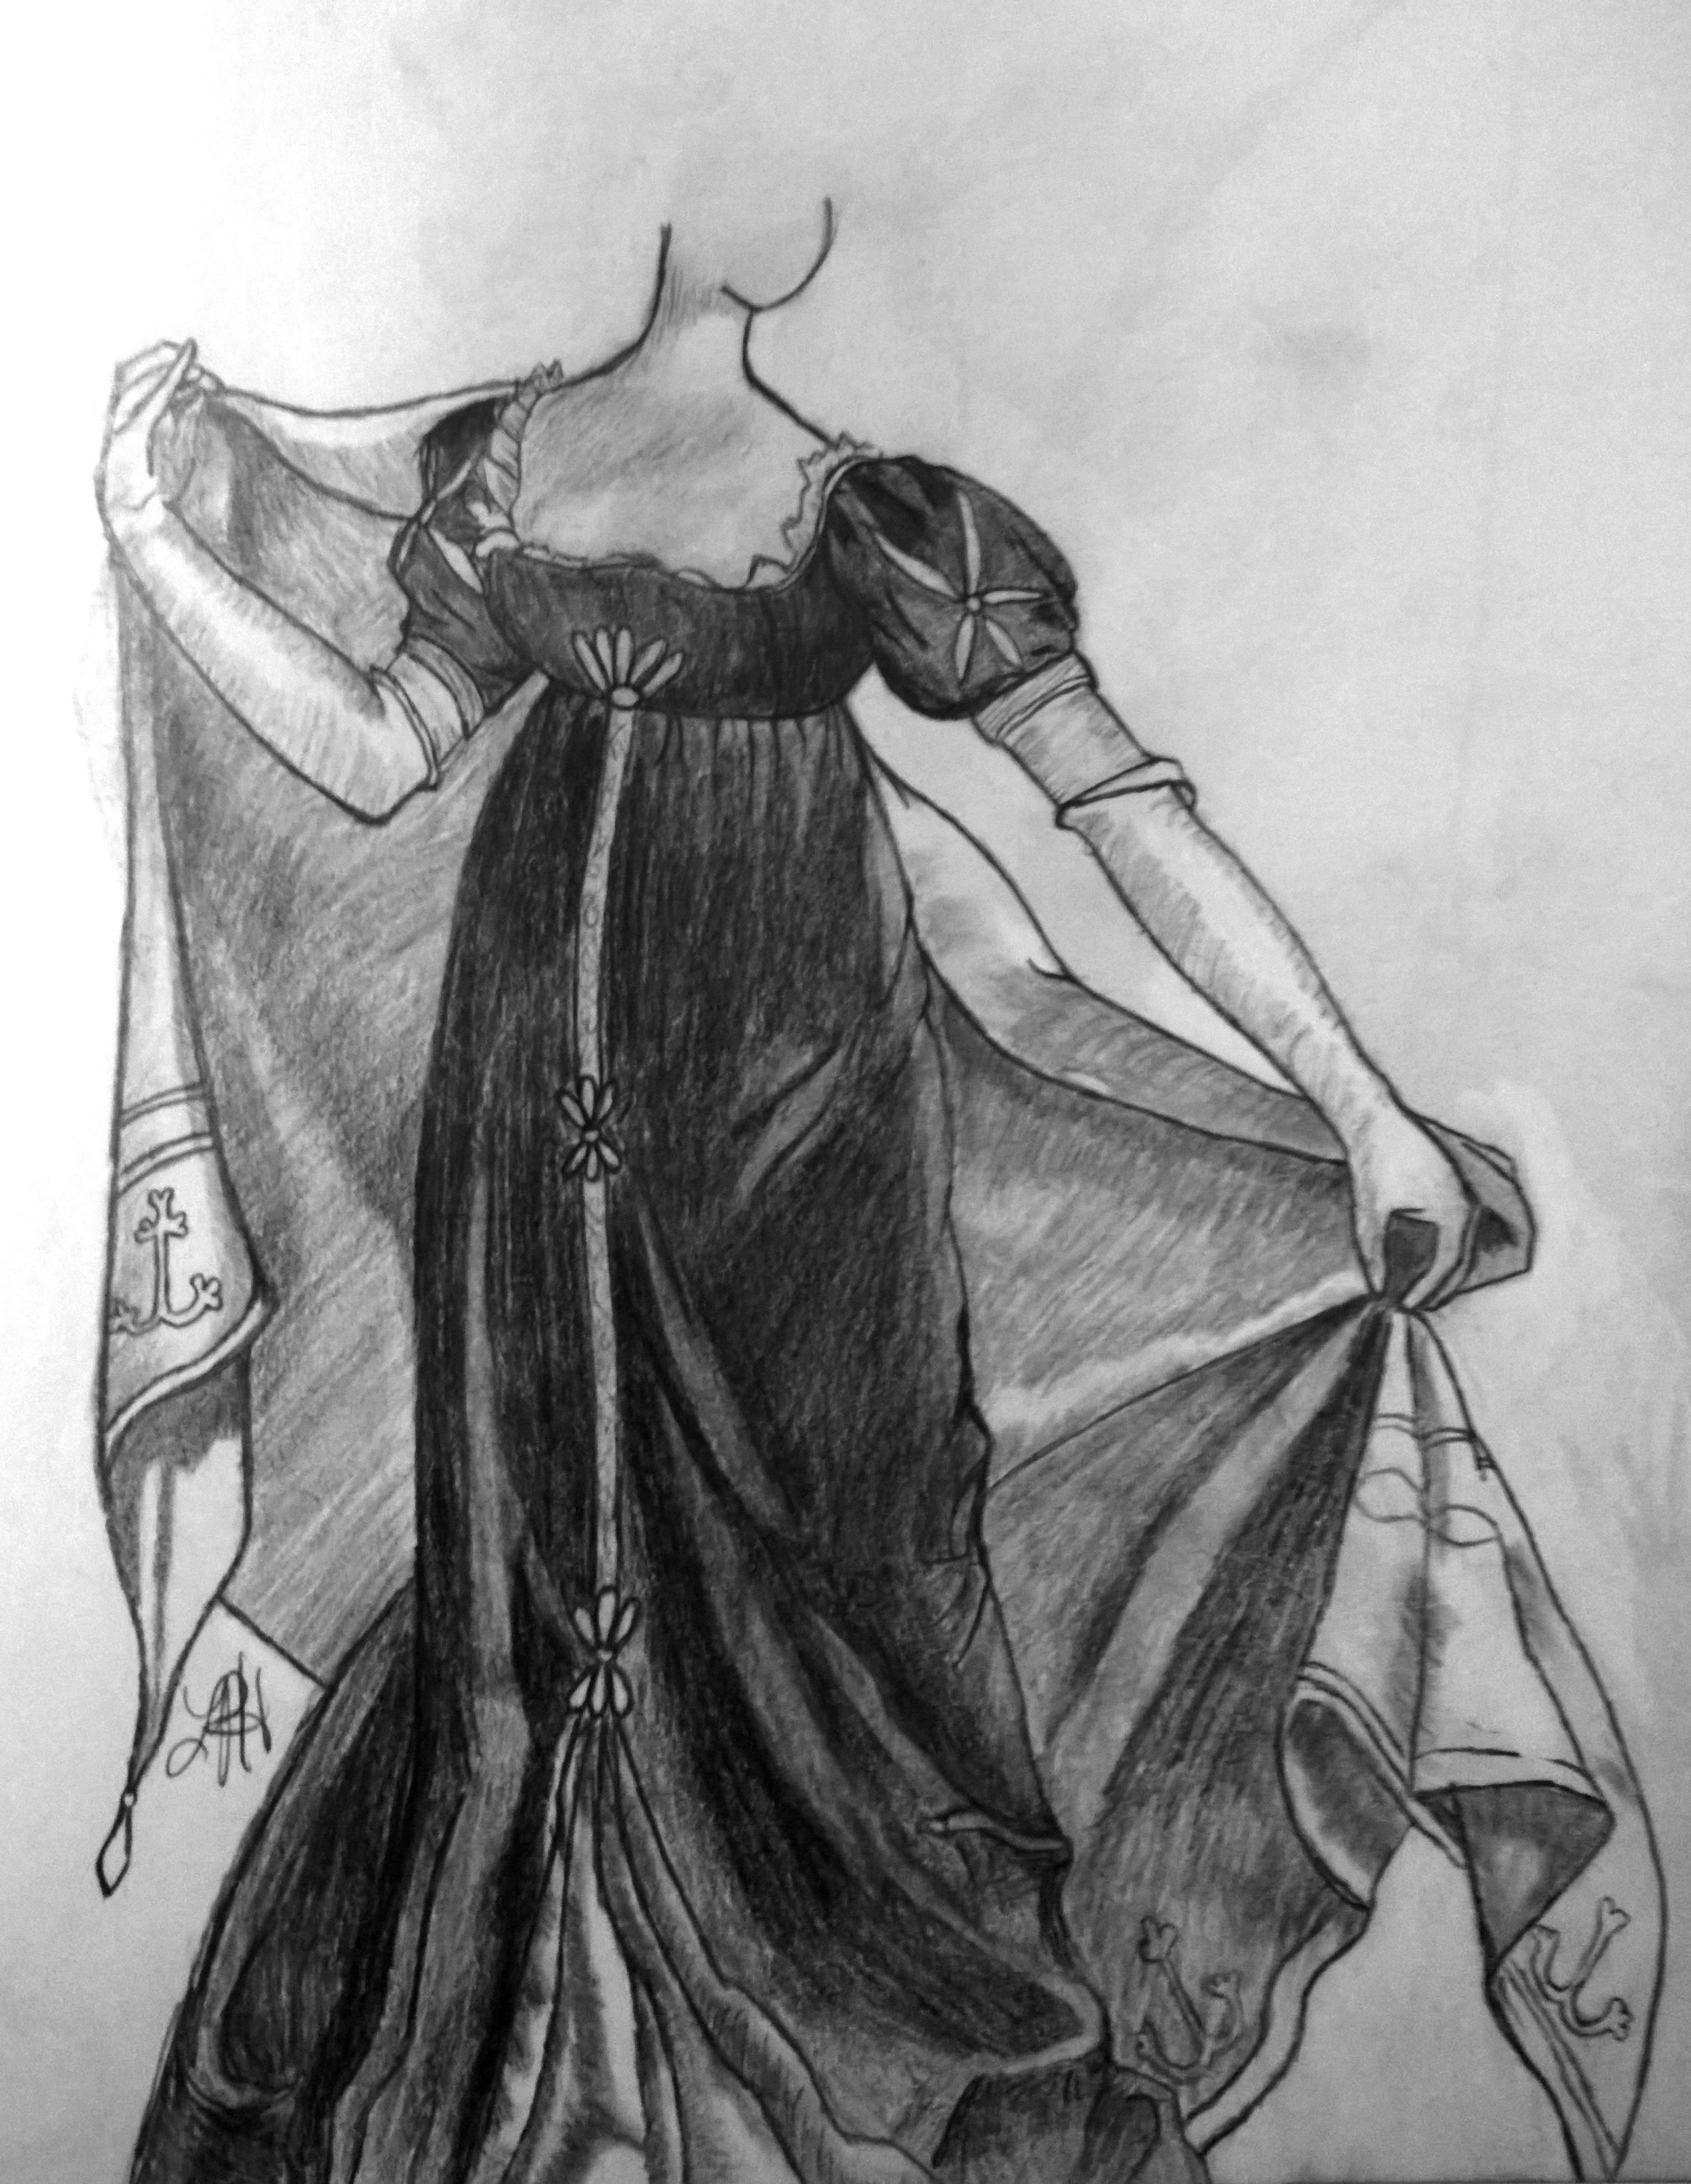 My original drawing. My focus for this was originally shading and folds.